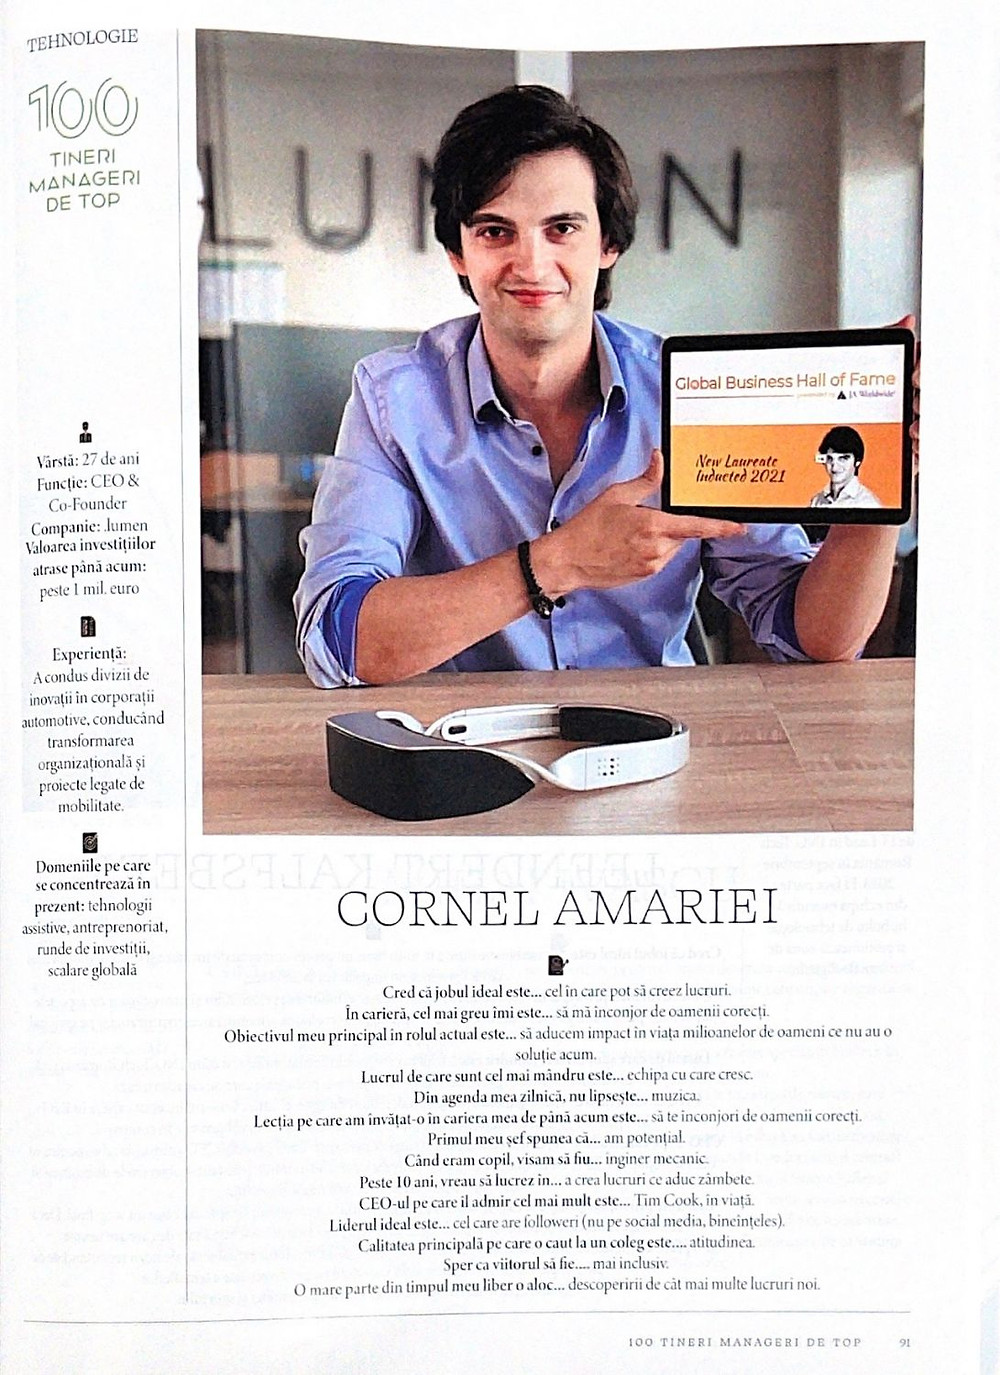 A scan of Business Magazin's page on Cornel Amariei